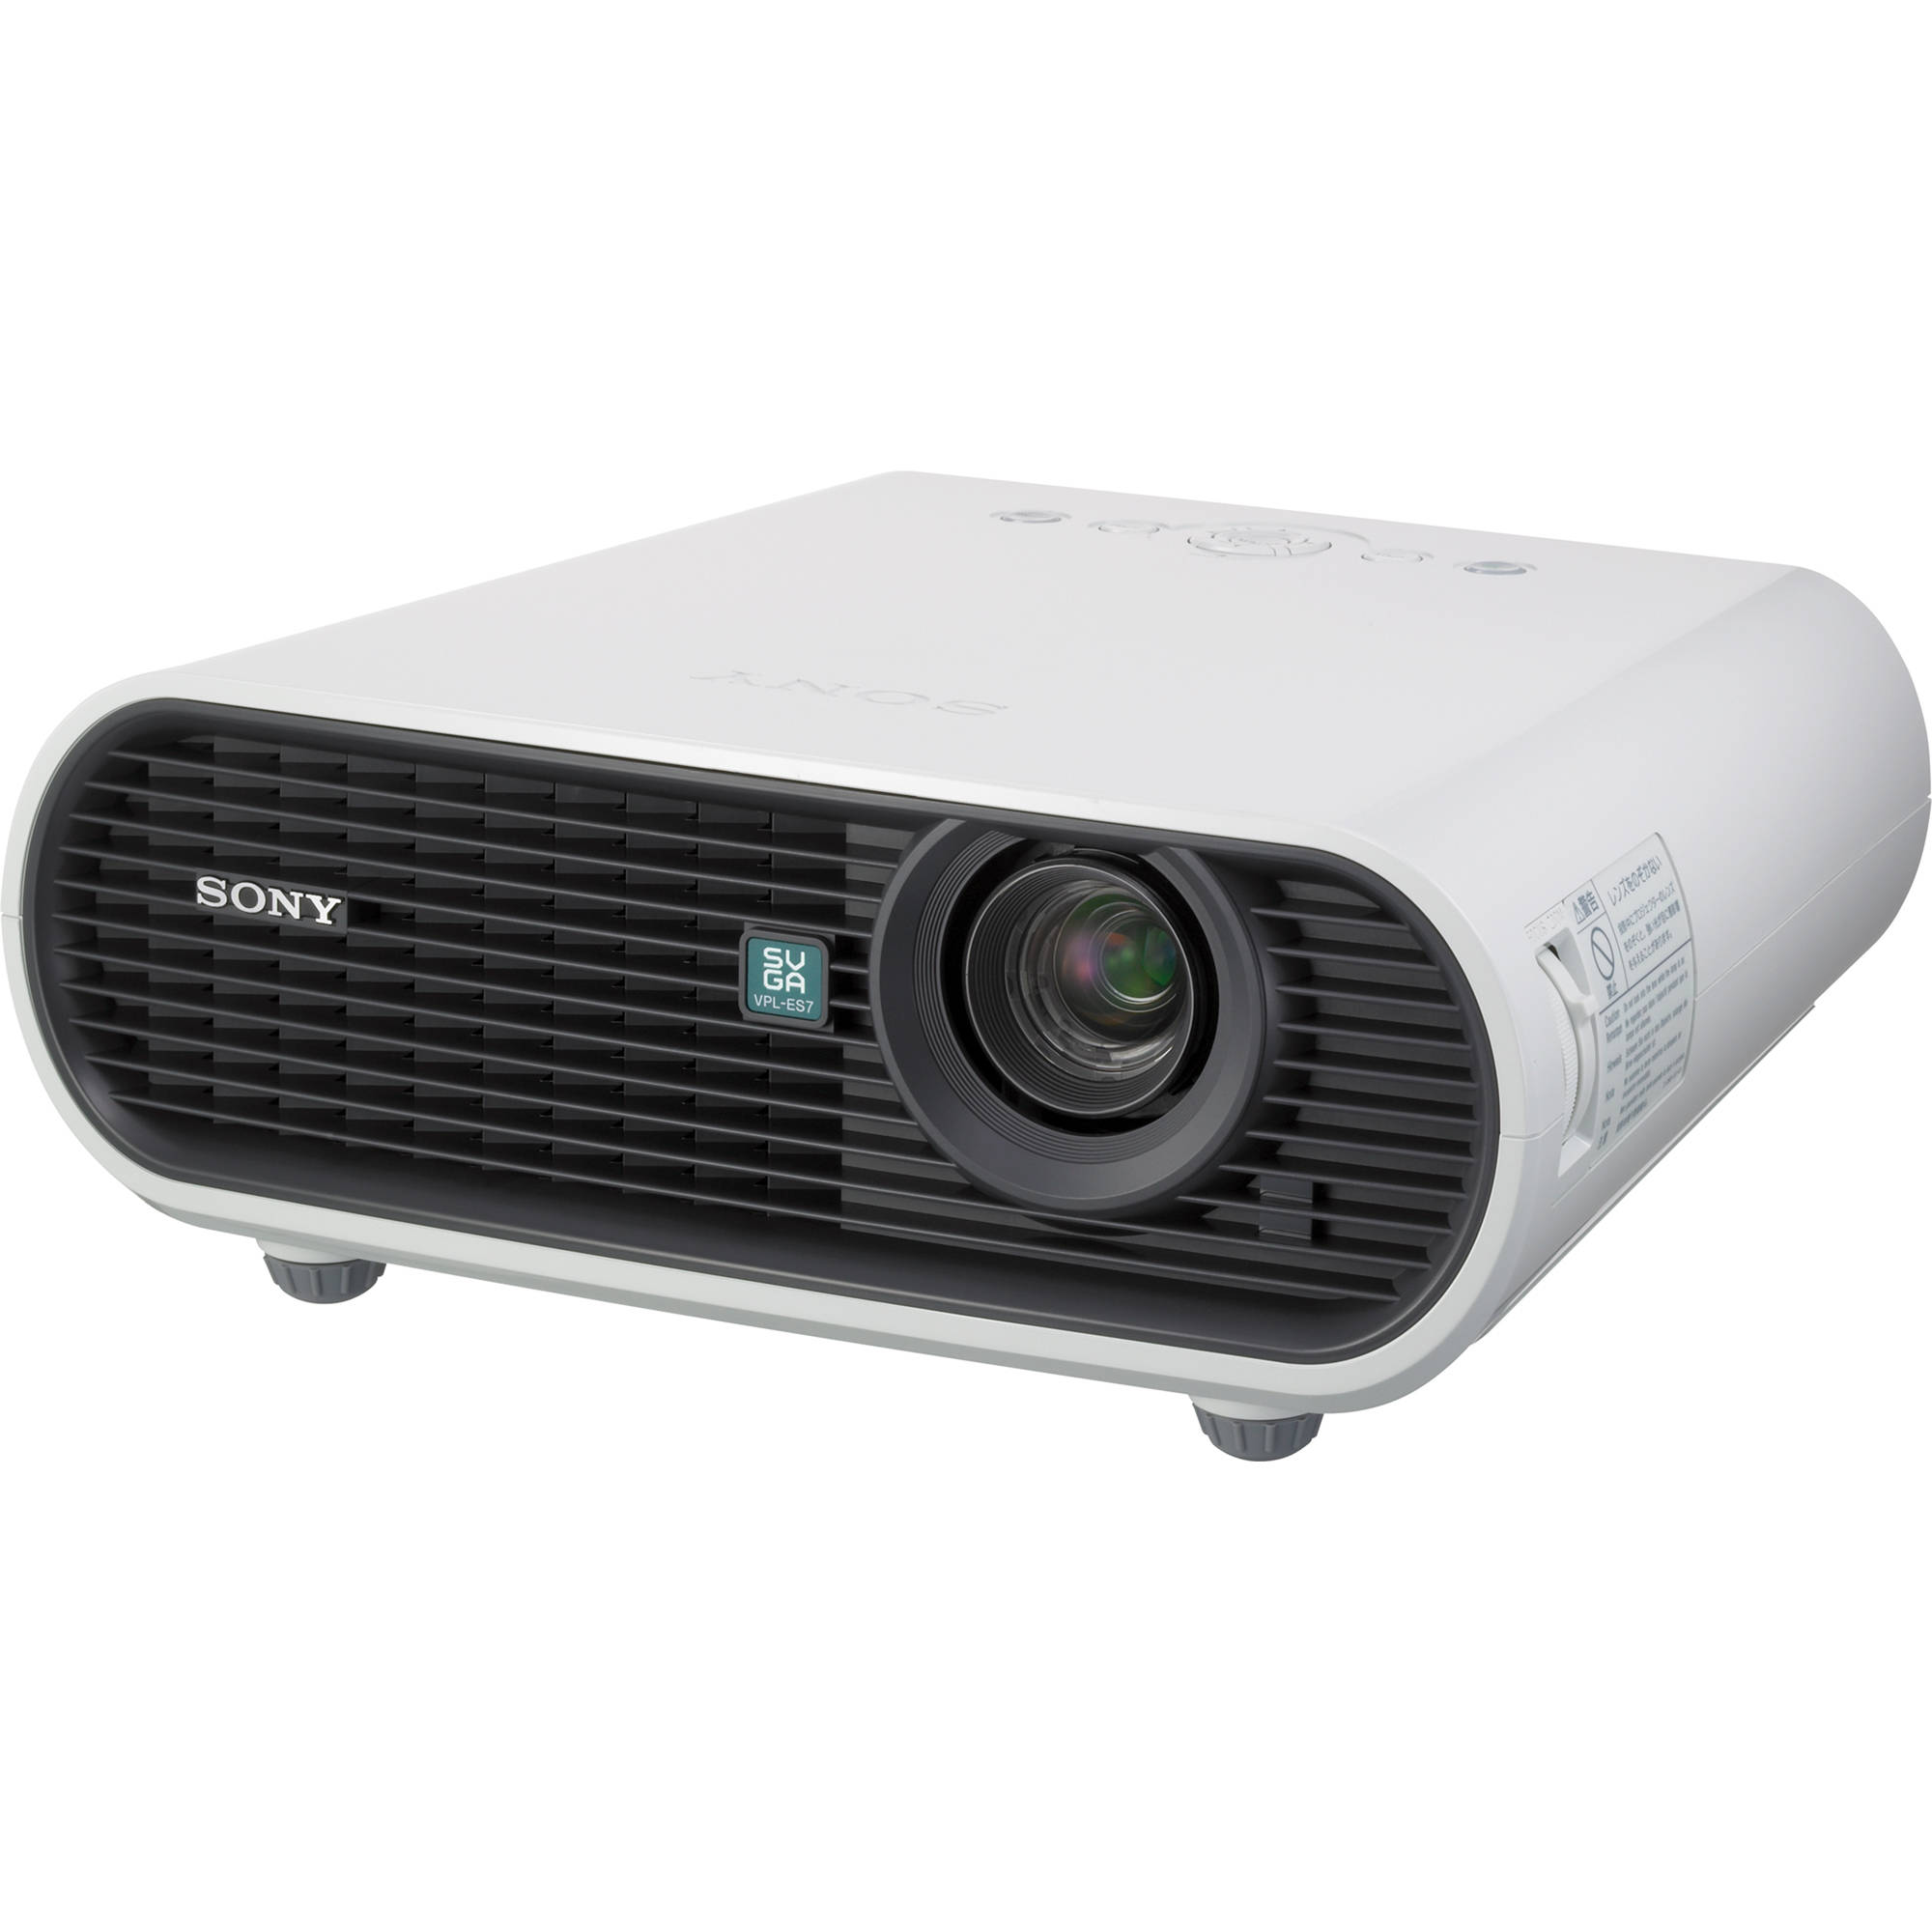 Sony vpl es7 data projector vpl es7 b h photo video for Projector tv reviews